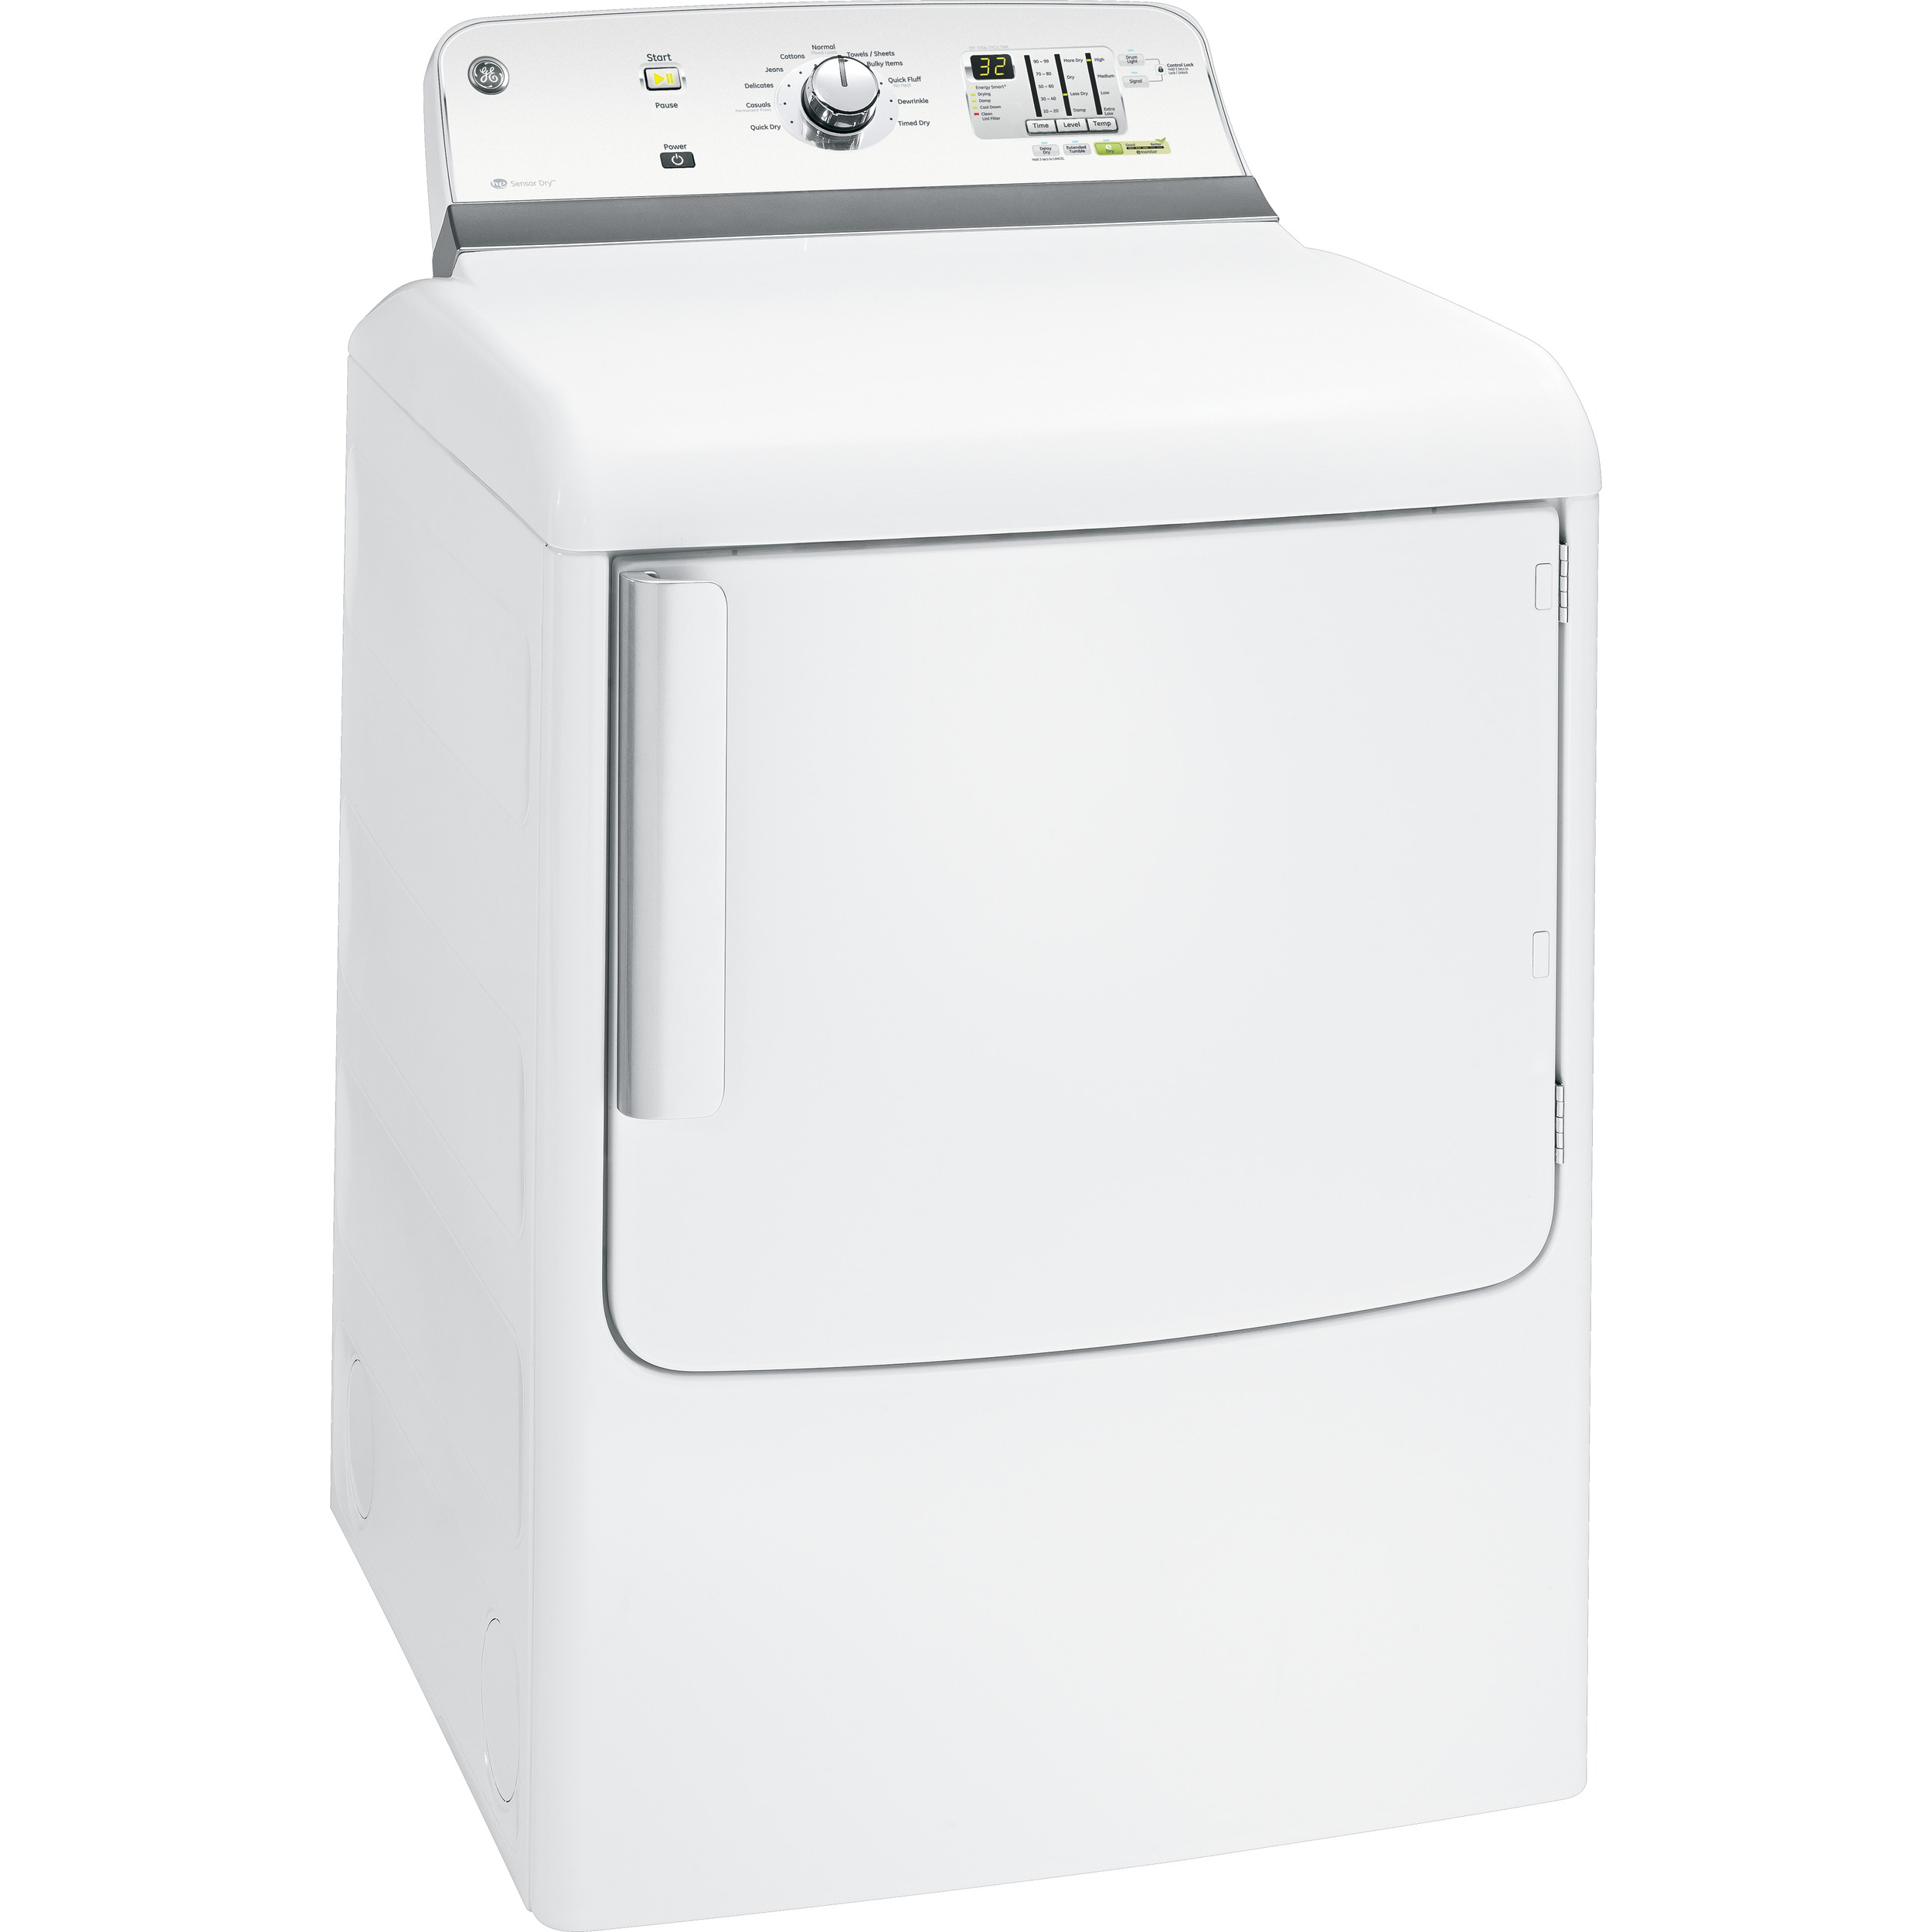 GE 7.8 cu. ft. Gas Dryer - White